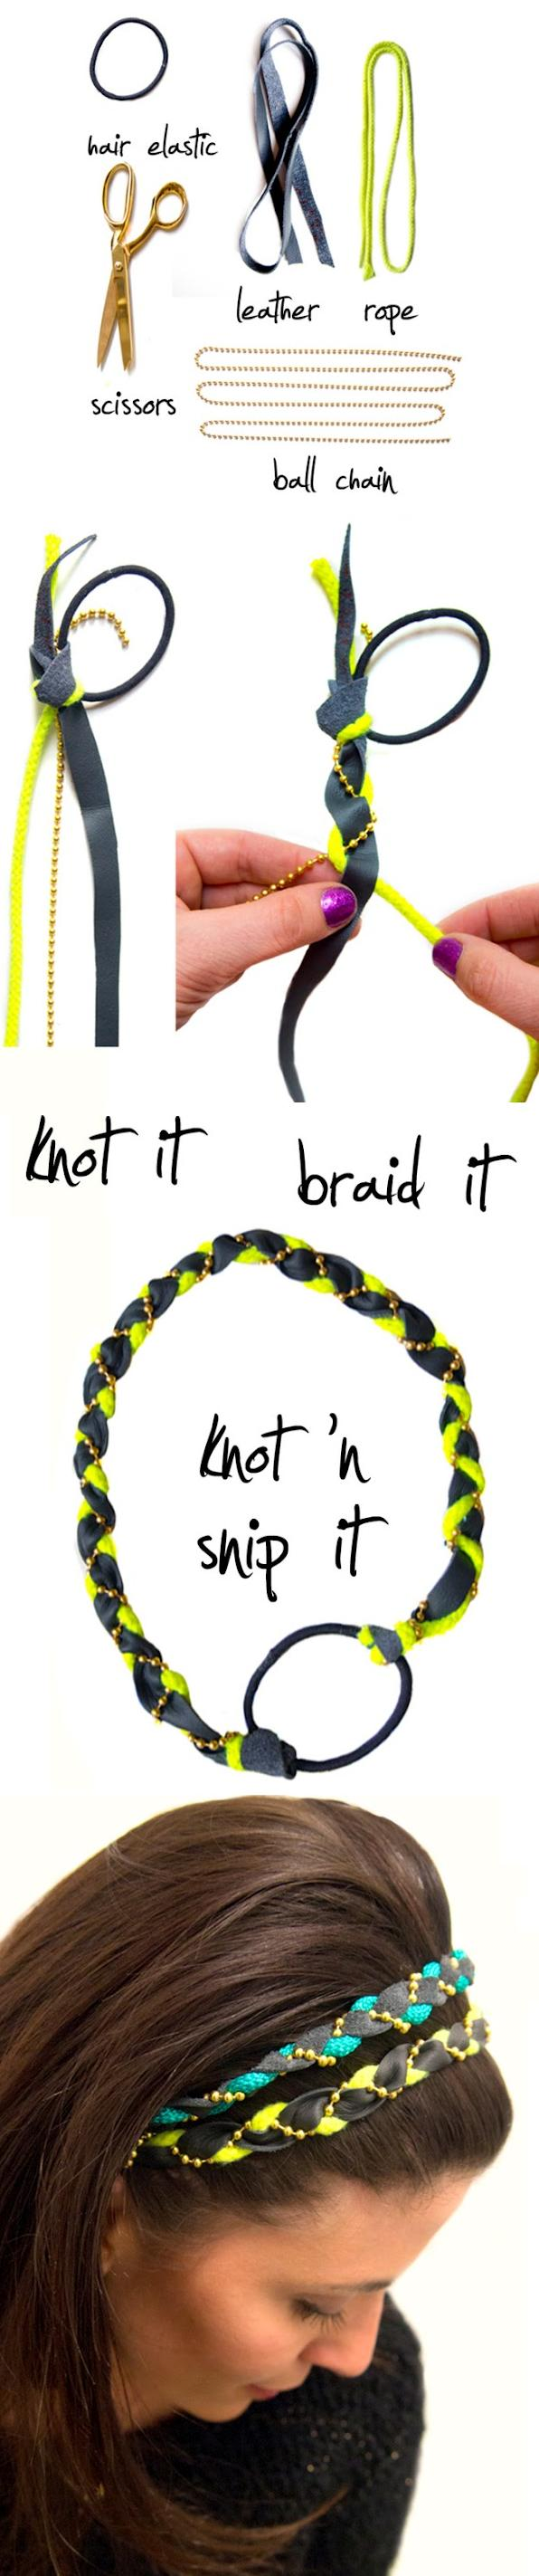 DIY: Quick & Easy Braided Headband